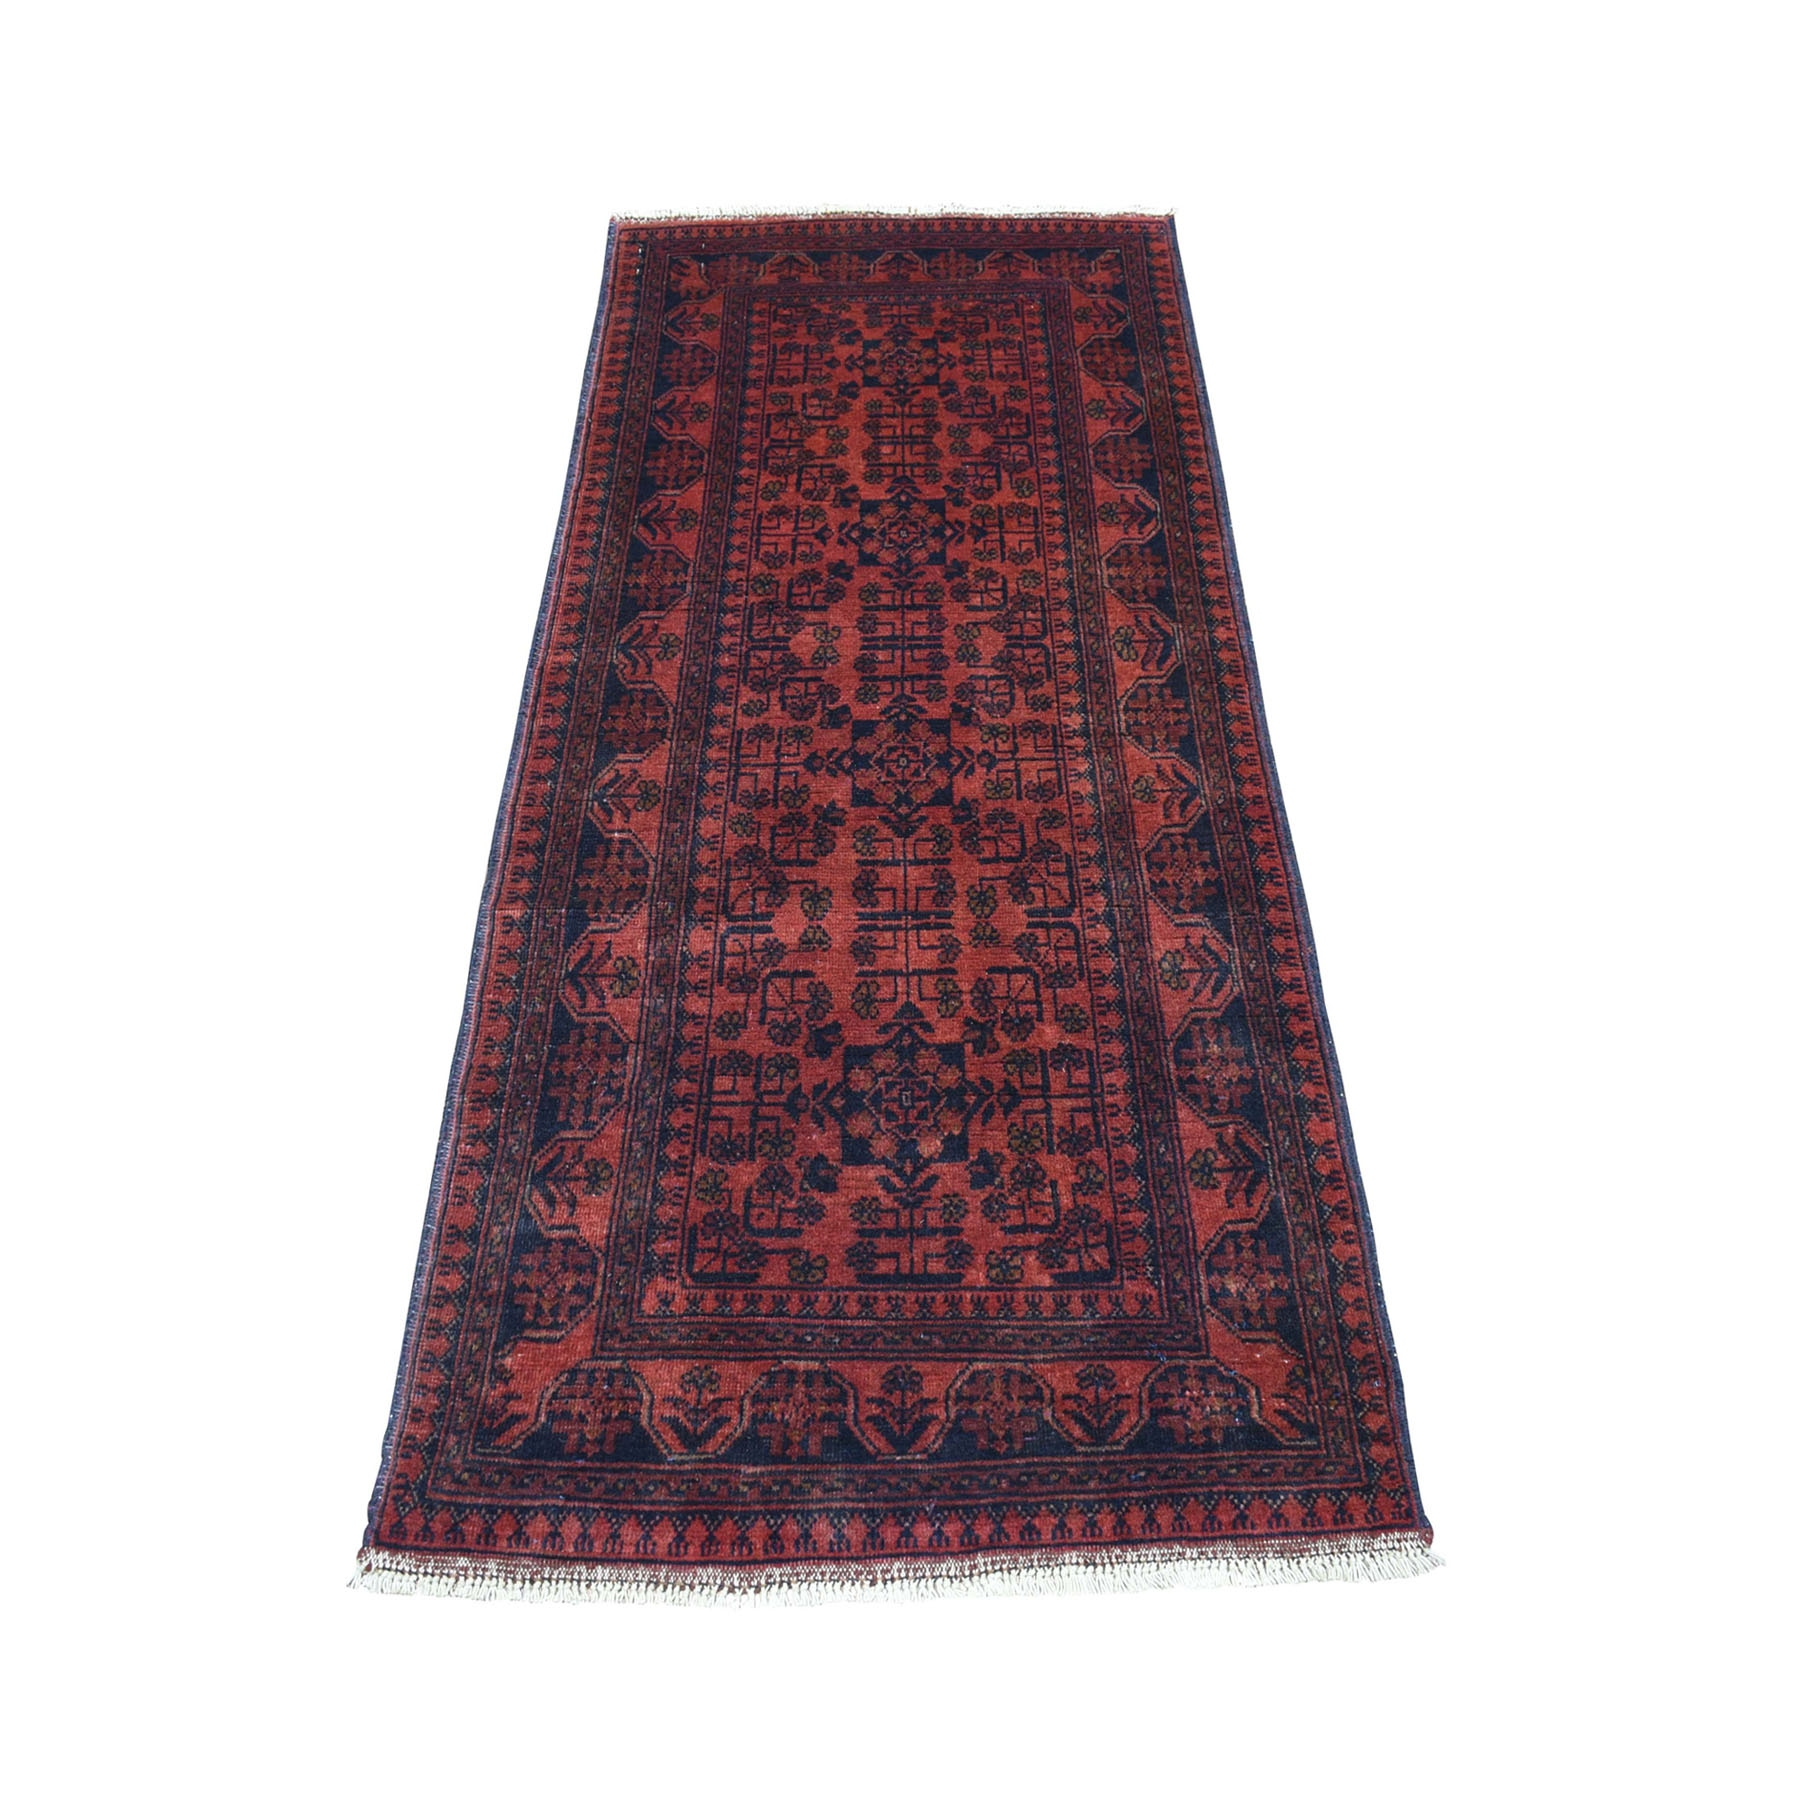 "2'7""X6'1"" Deep And Saturated Red Geometric Afghan Andkhoy Pure Wool Hand Knotted Runner Oriental Rug moaecda9"